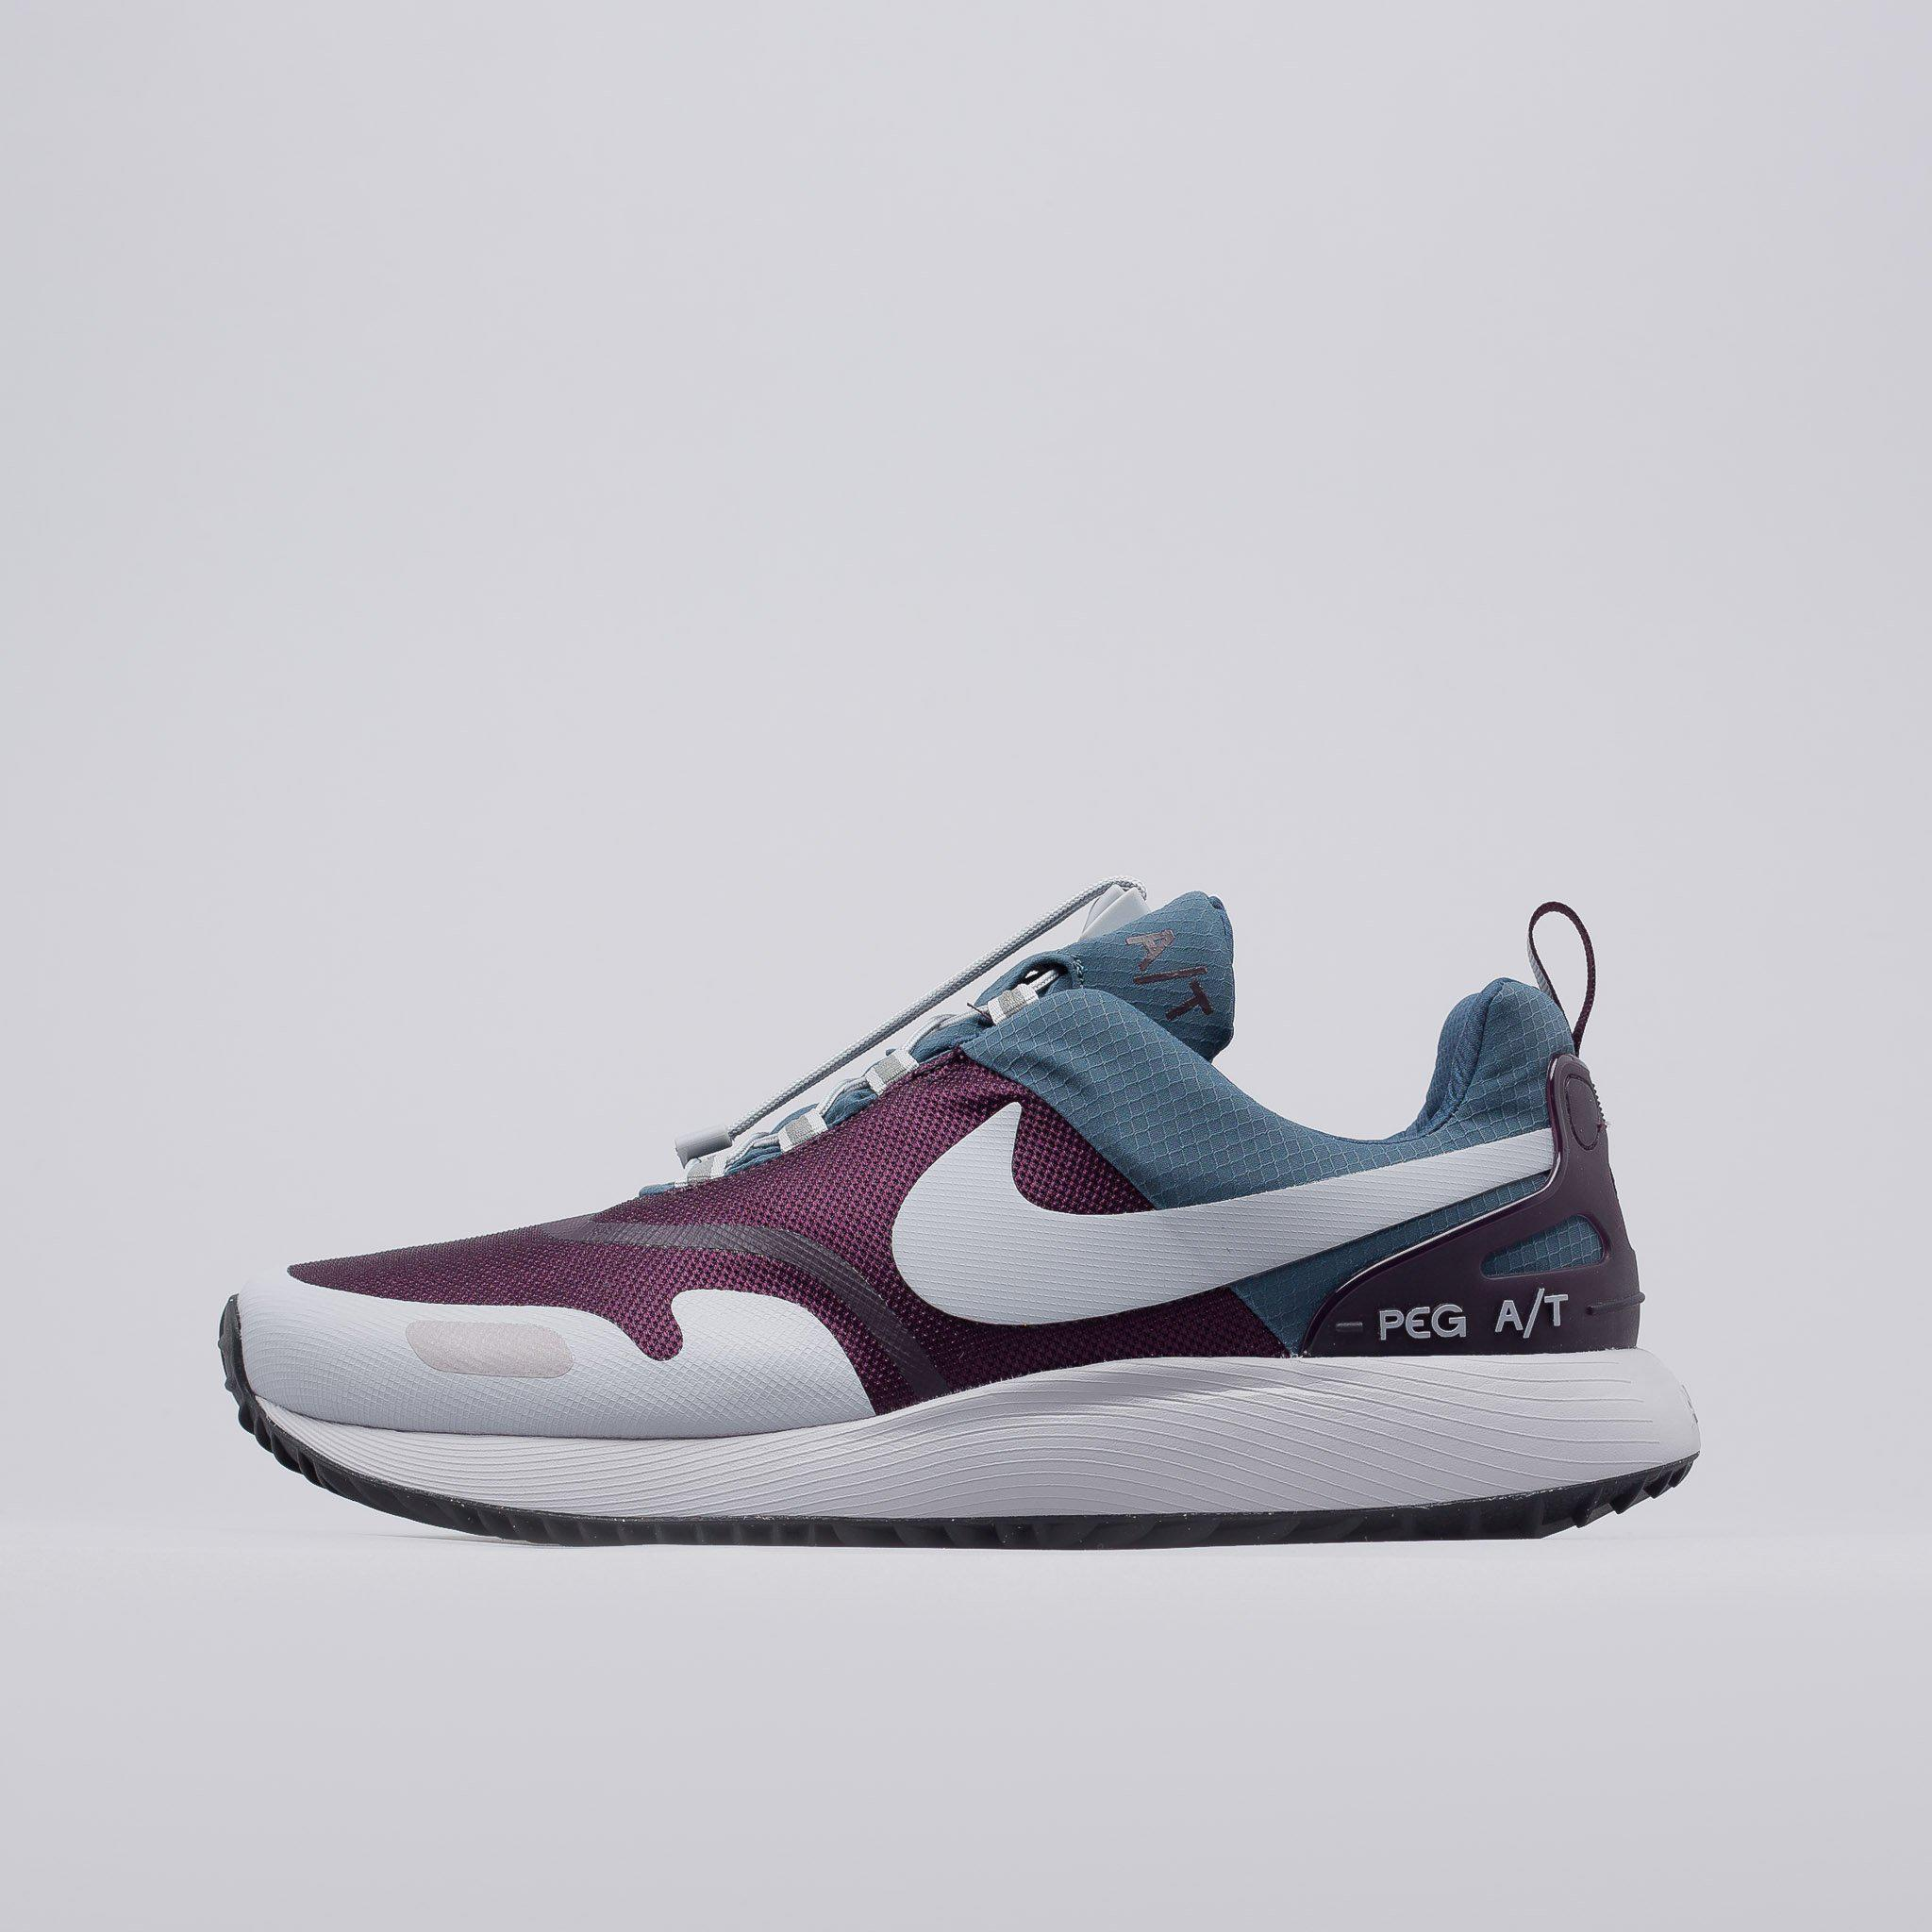 32dc579c3c75d Lyst - Nike Air Pegasus A t Winter In Blue Fox wolf Grey in Blue for Men